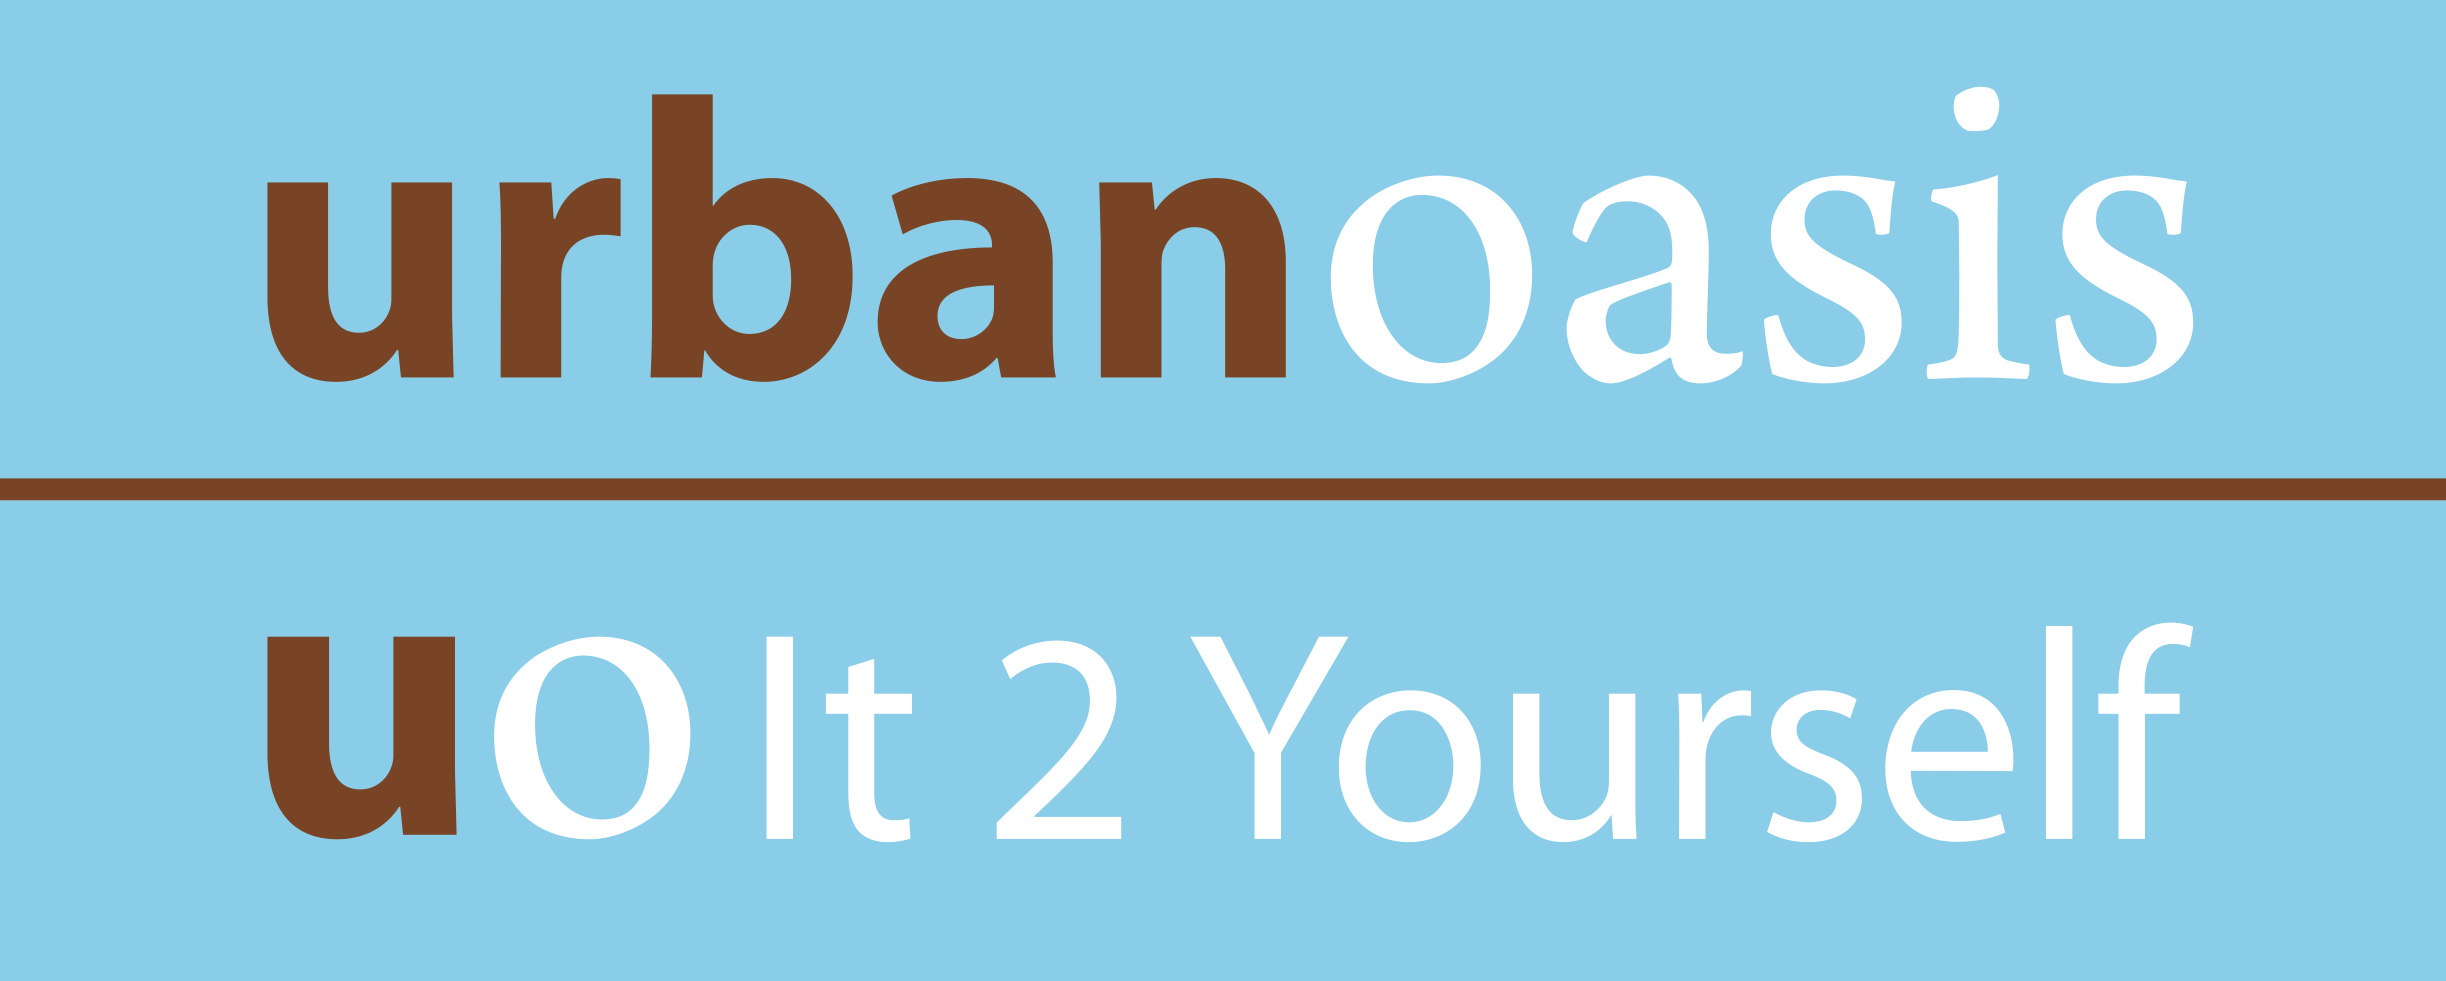 urban oasis you owe it to yourself spa treatments packages spa membership beauty spa manchester debenhams